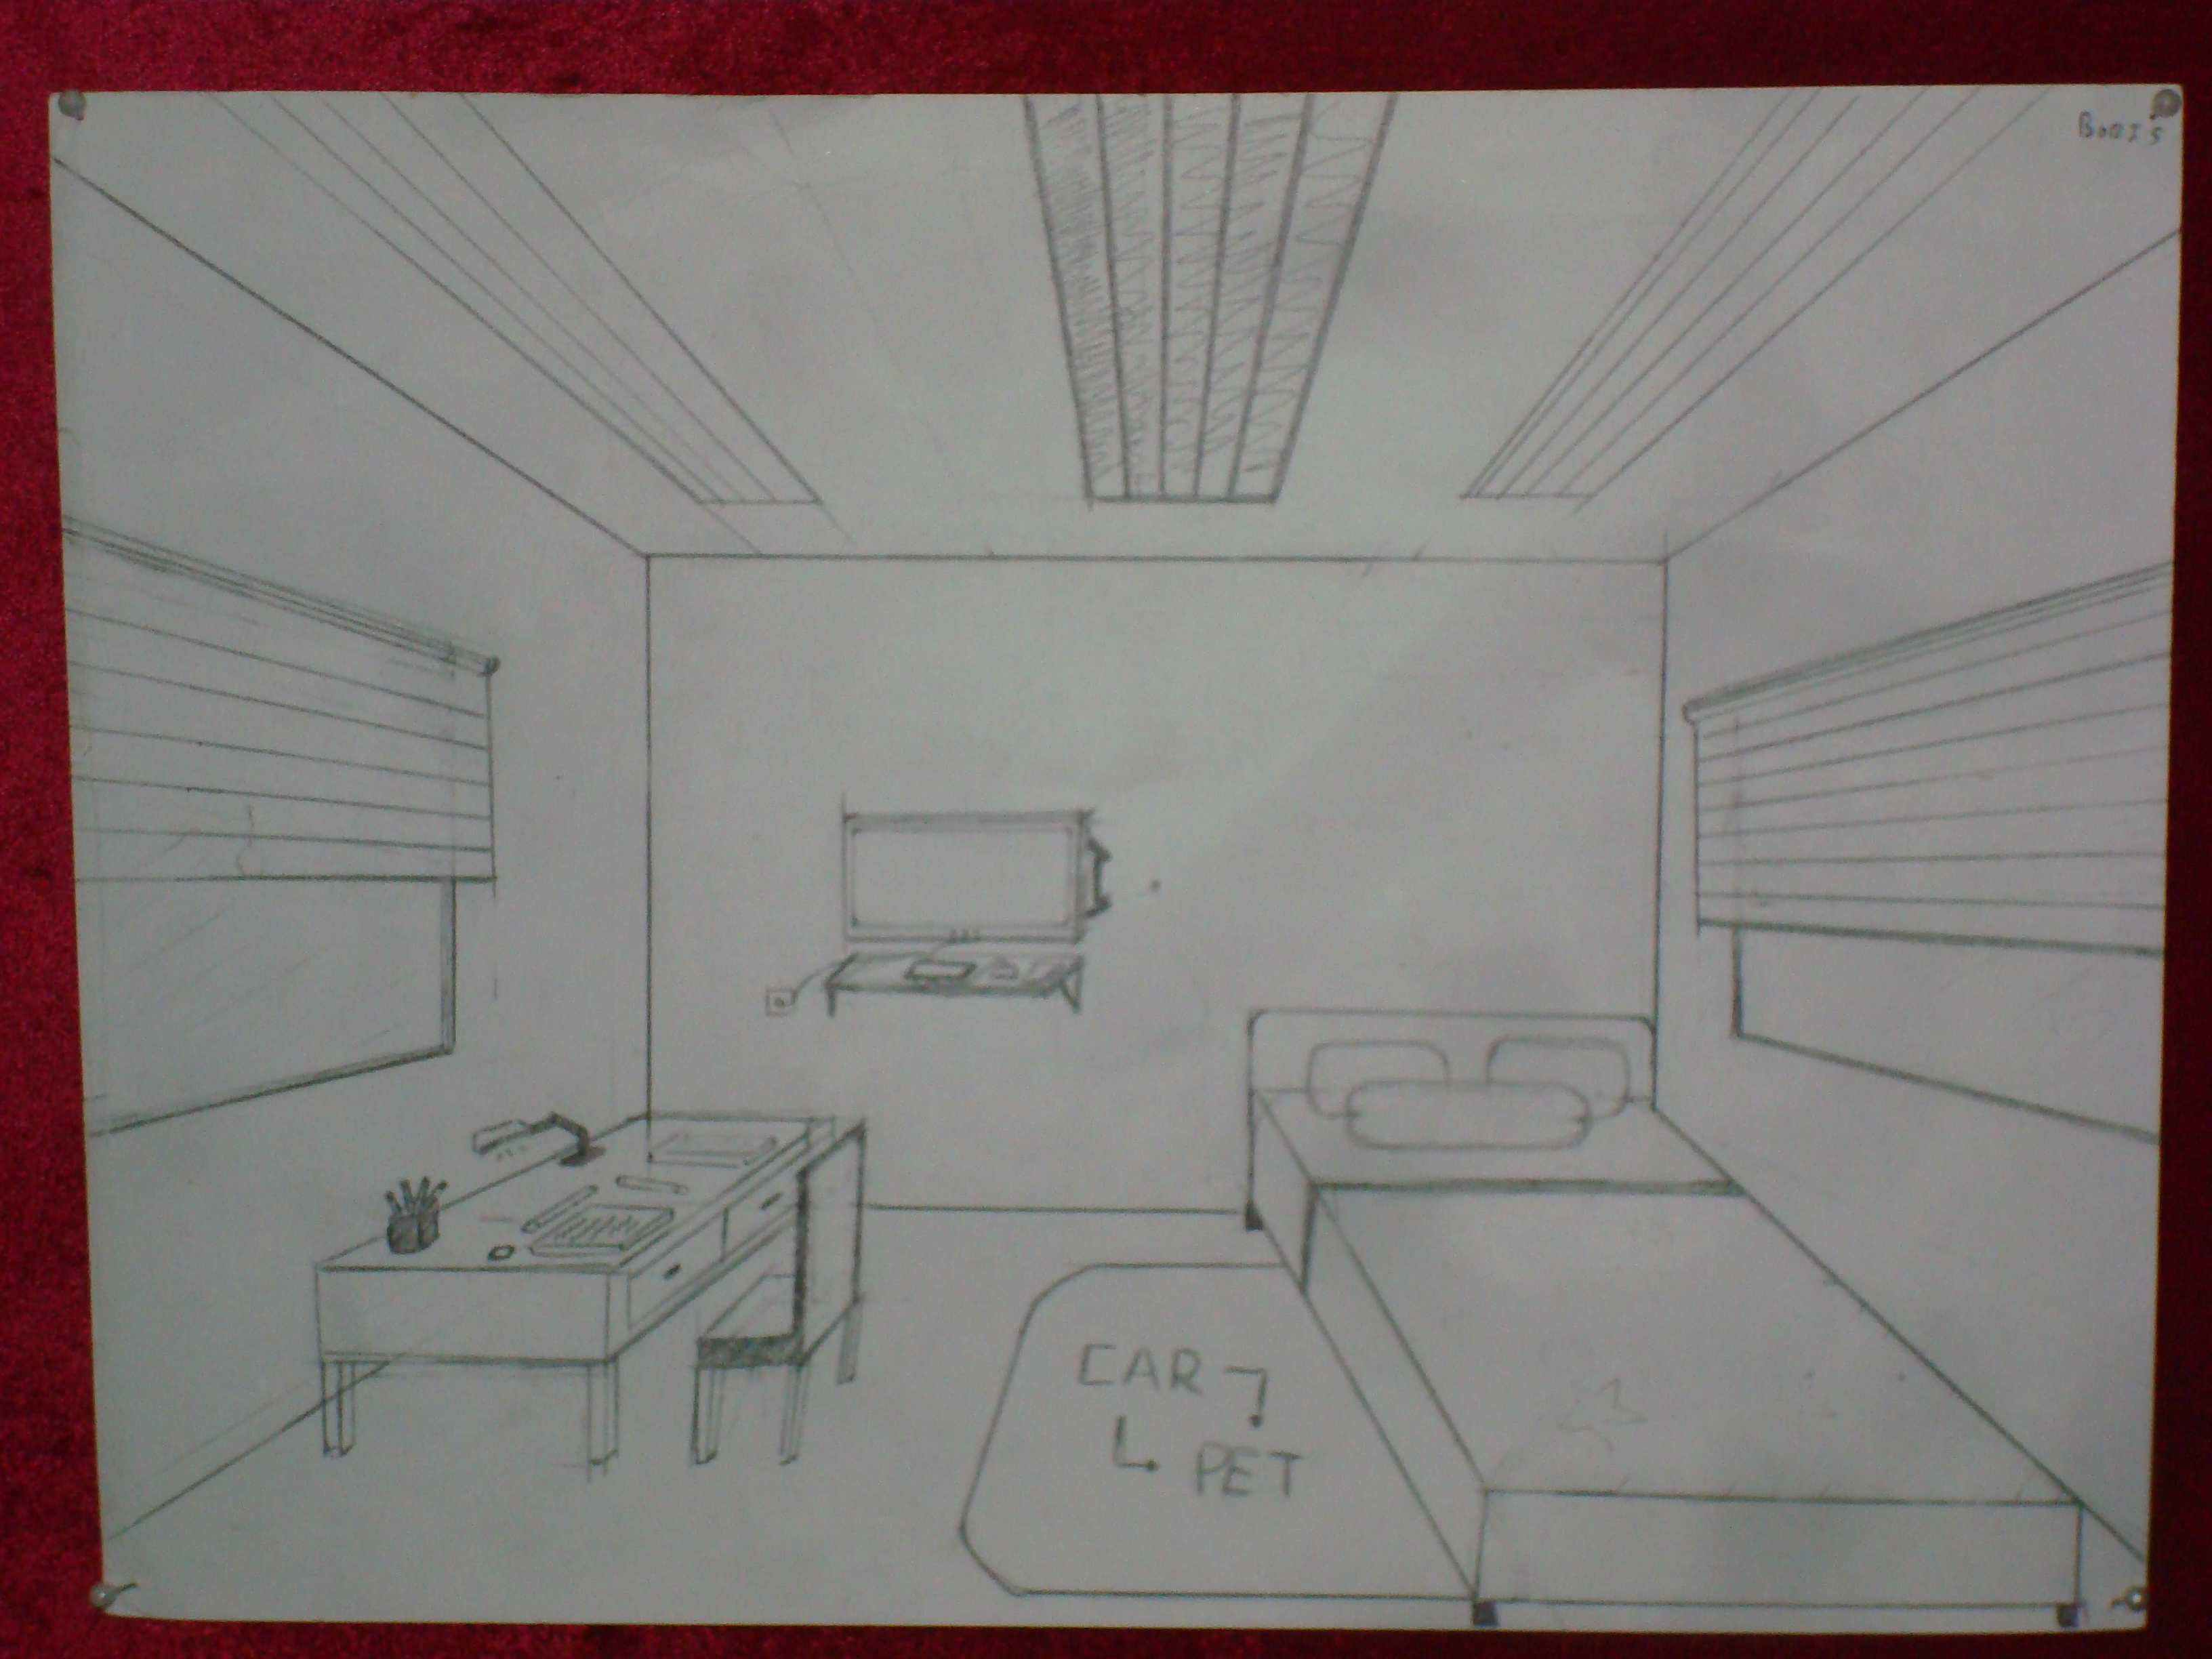 3d Bed Drawing At Getdrawings Com Free For Personal Use